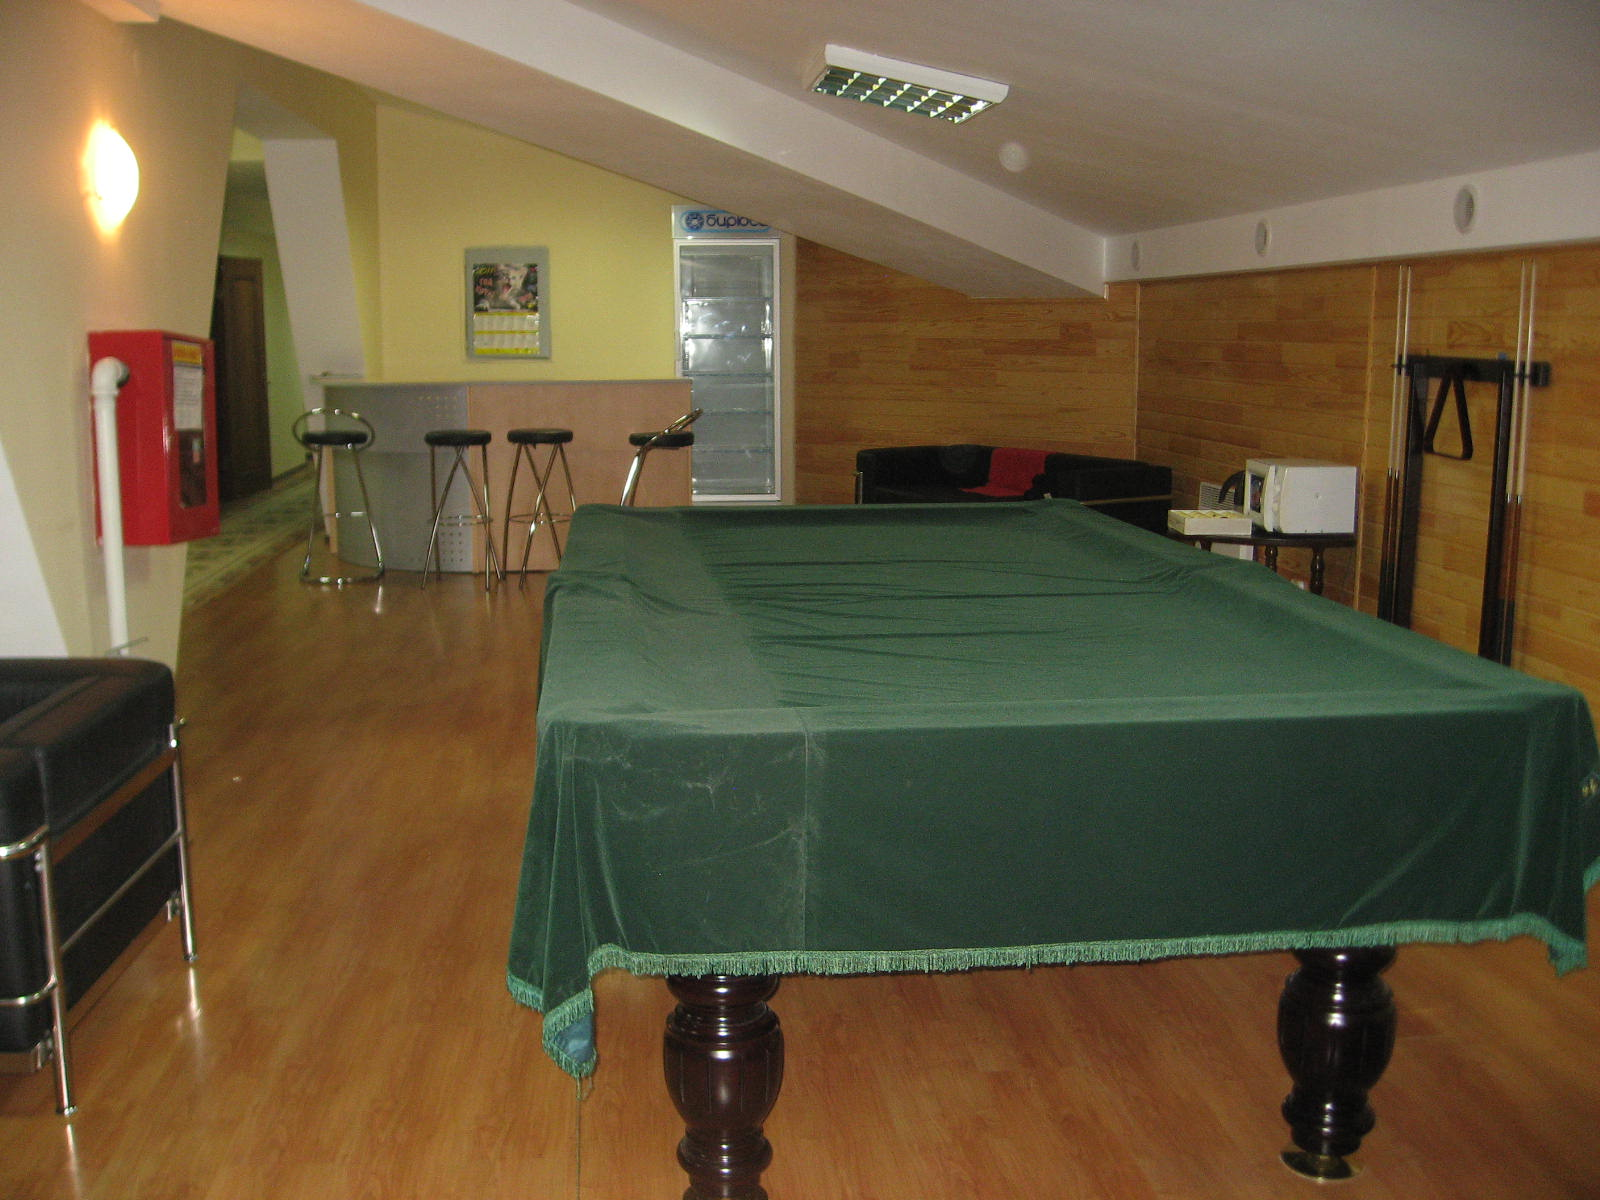 ... 4 Persons Equipped With Necessary Furniture, Mini Bar And TV Set. At  The Railway Station Building You Can Visit Exposition Dedicated To The  Circumbaikal ...